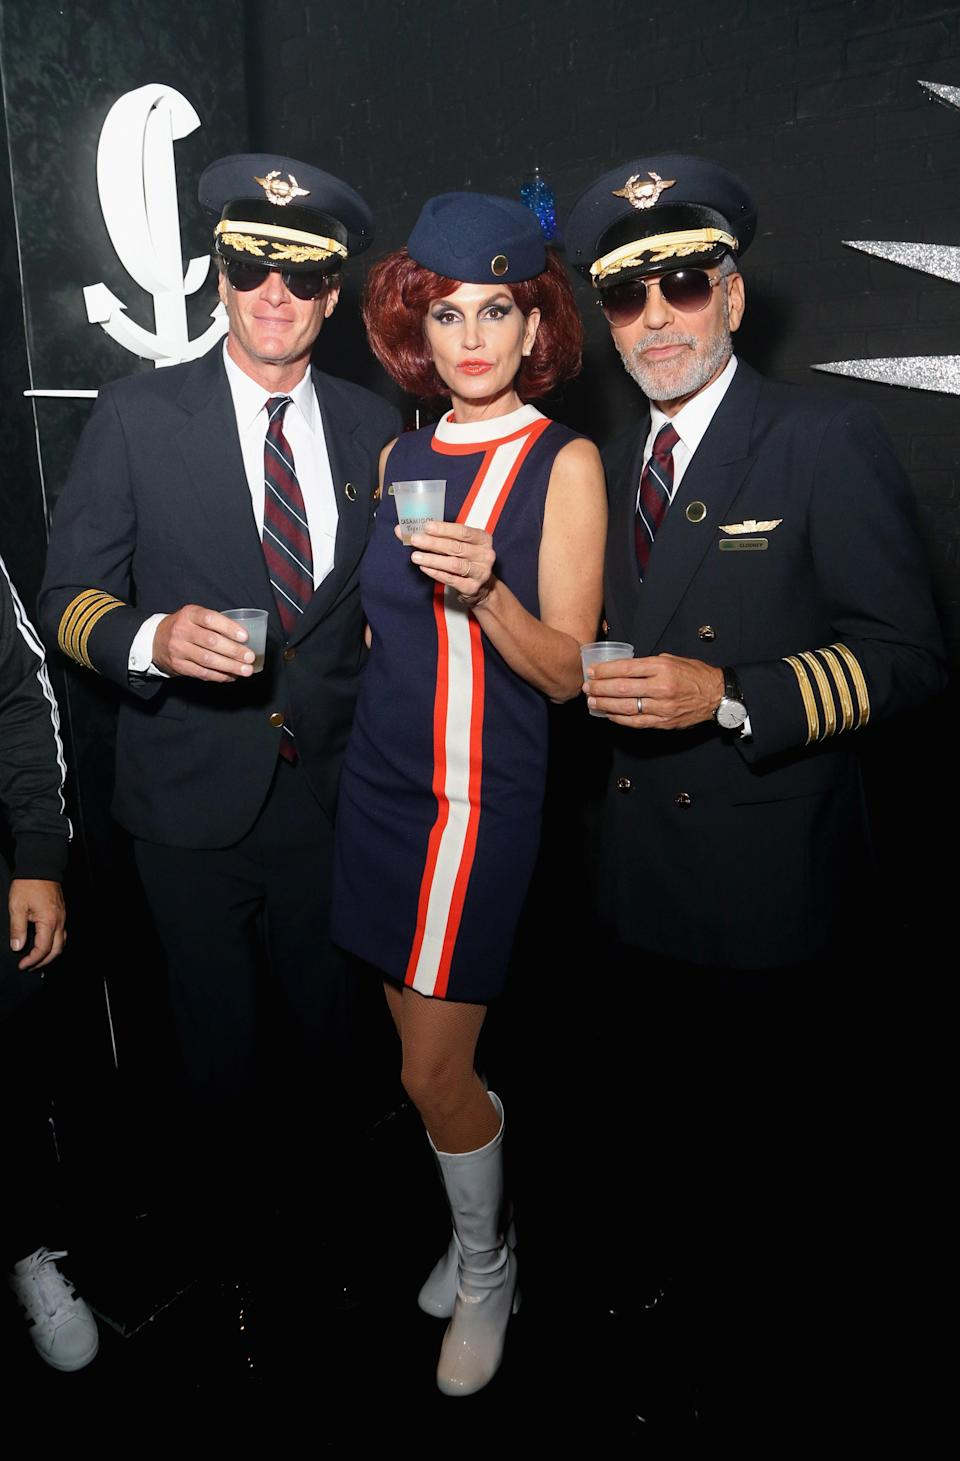 The plane's captains were played by husband Rande Gerber, left, and George Clooney.